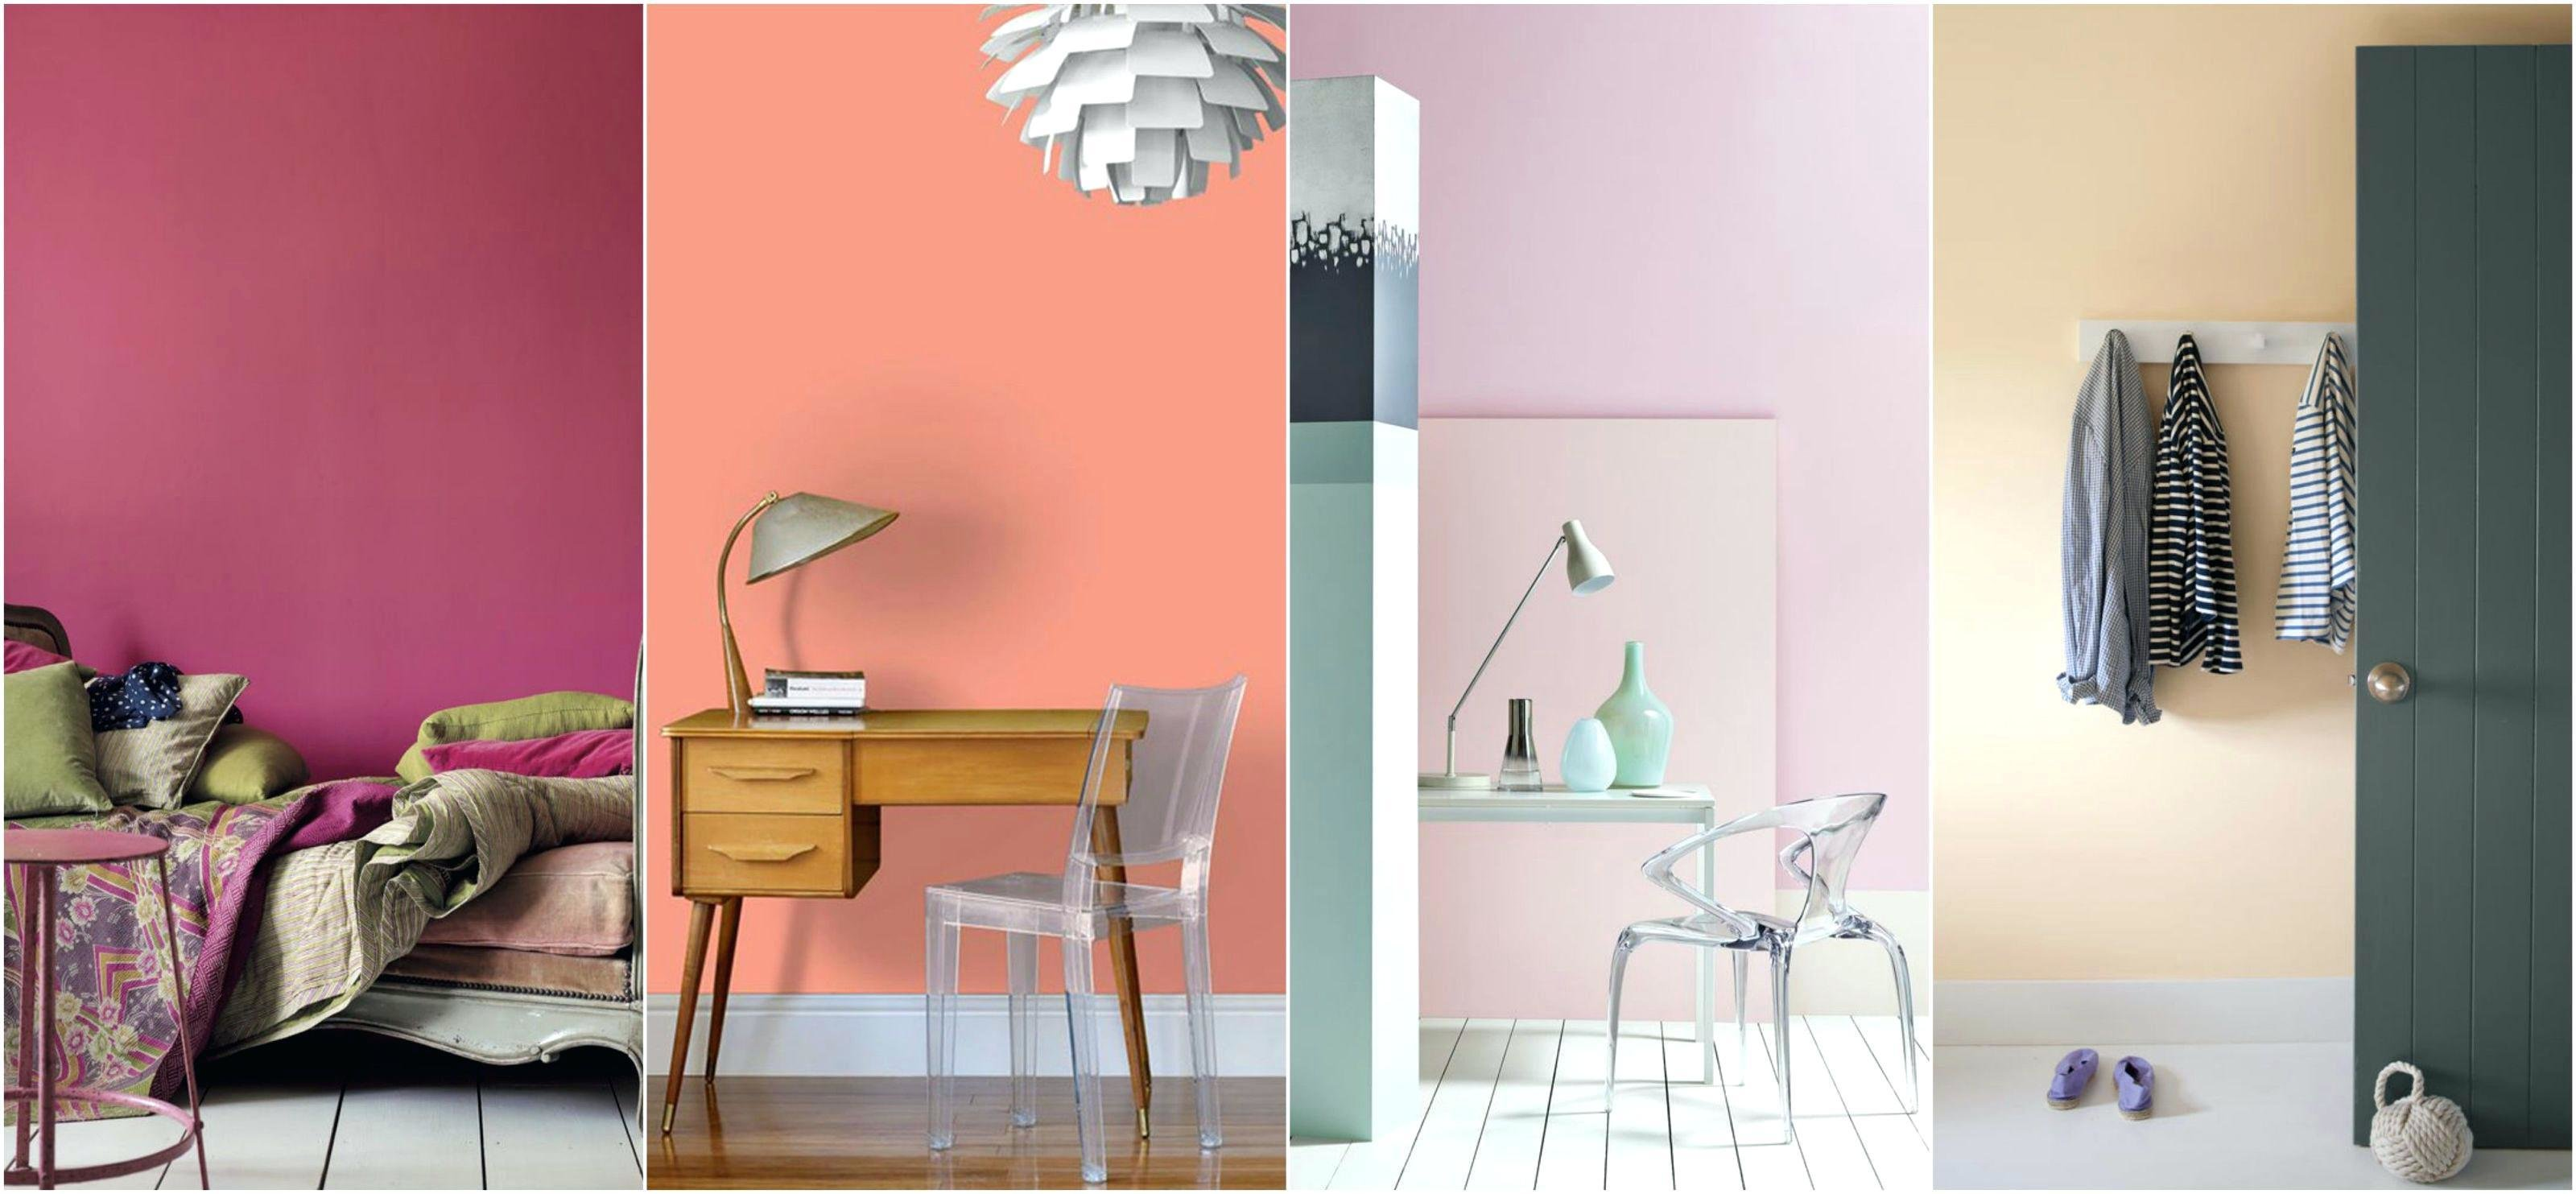 Best Shades Of Pink Paint Names Colours Boysen – Ismts Org With Pictures